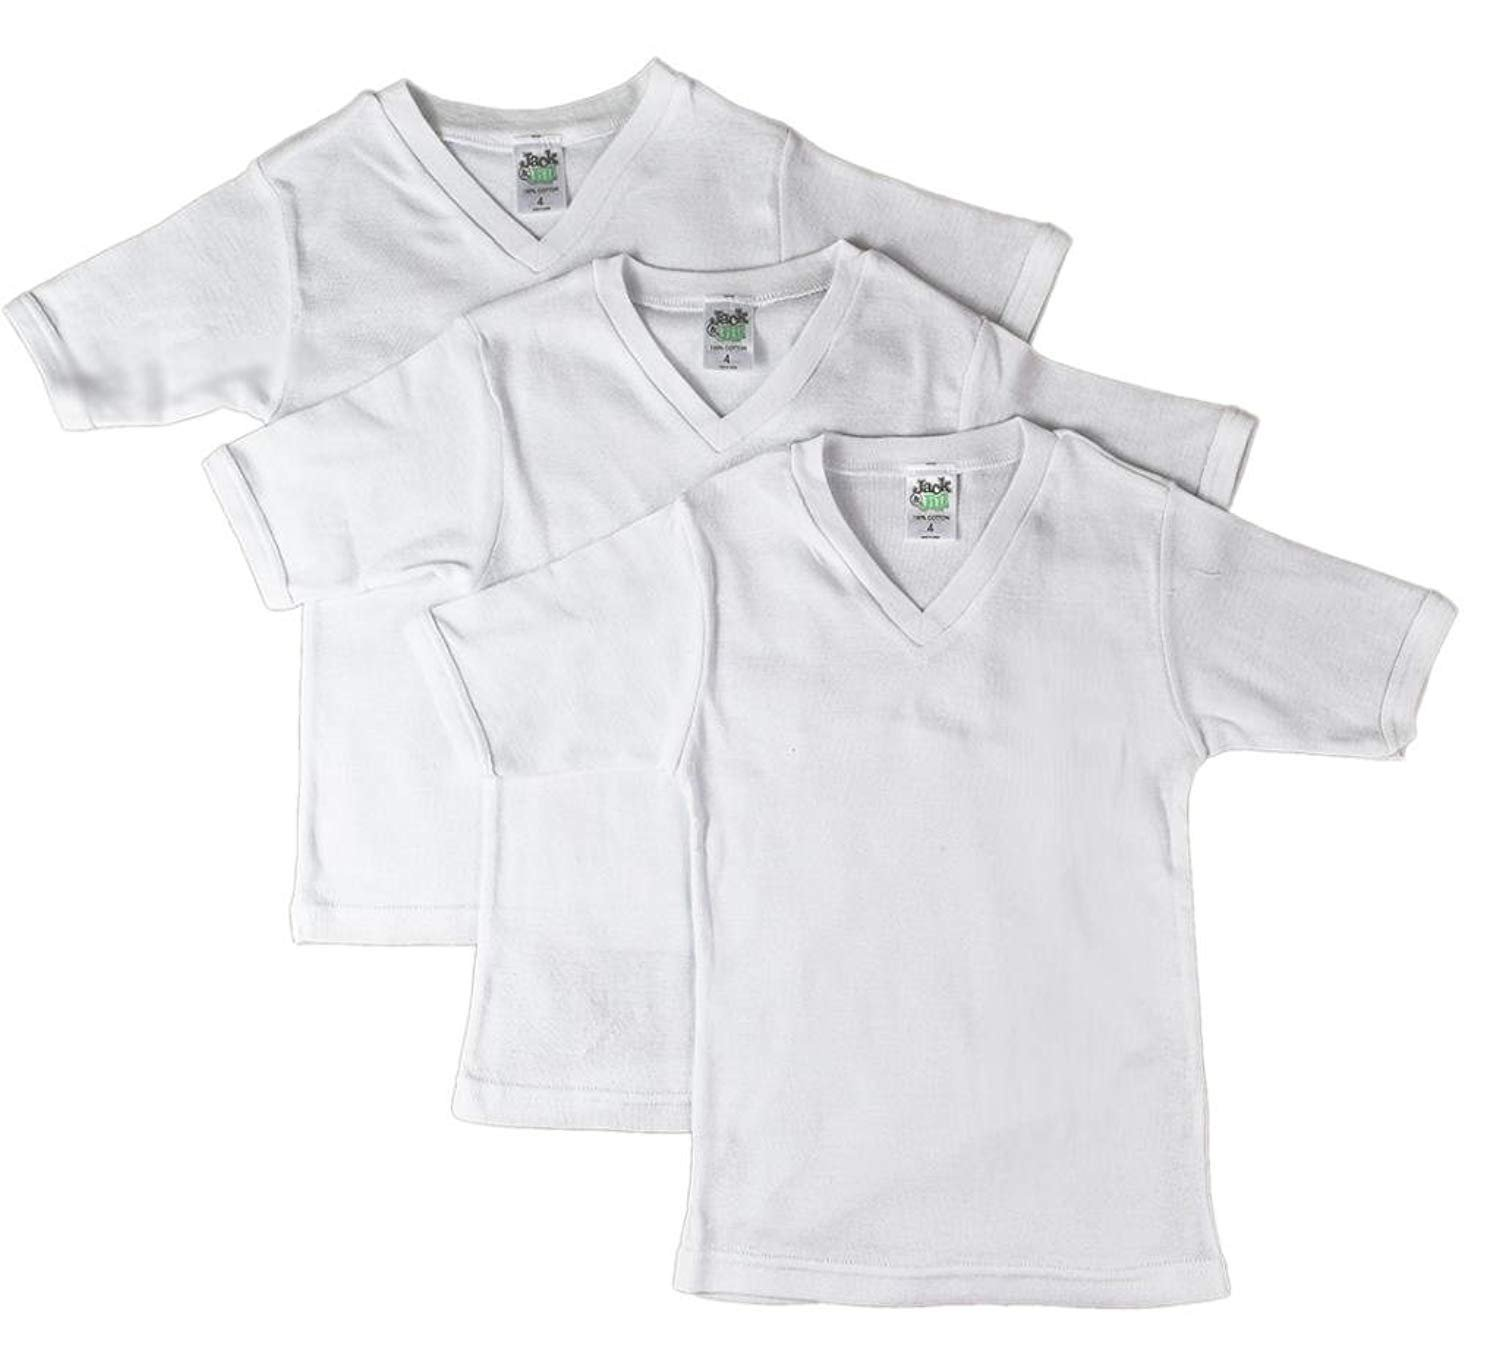 Jack 'n Jill Boys 100% Cotton V-neck T-shirt In Solid White (3 Pack) Size 16